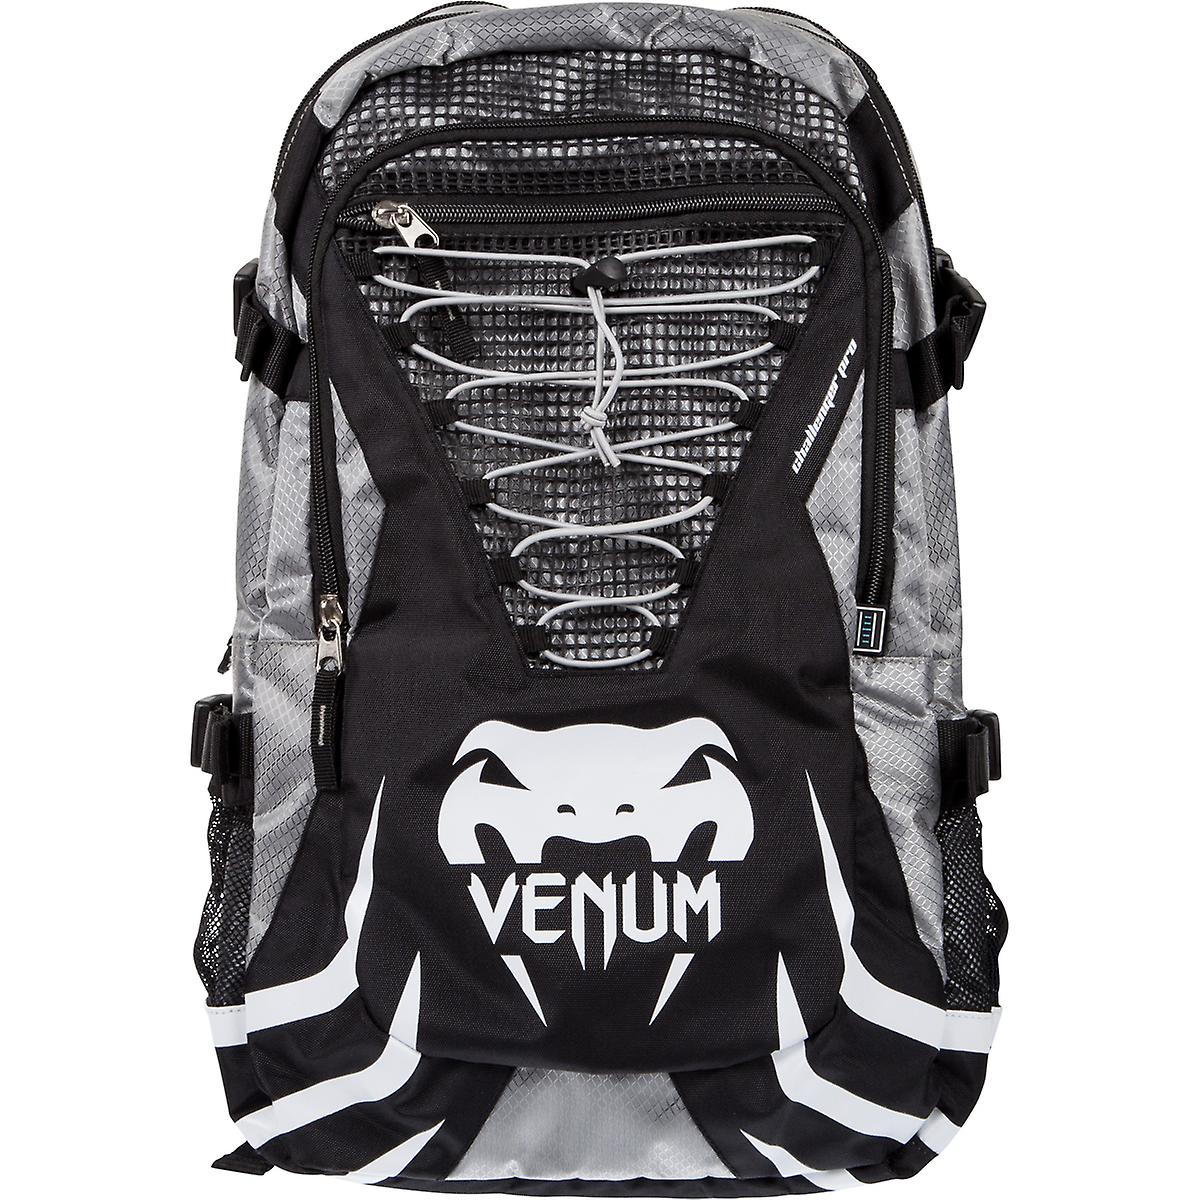 Venum Challenger Pro Backpack - Black Gray   Fruugo 0f3aaa05f9